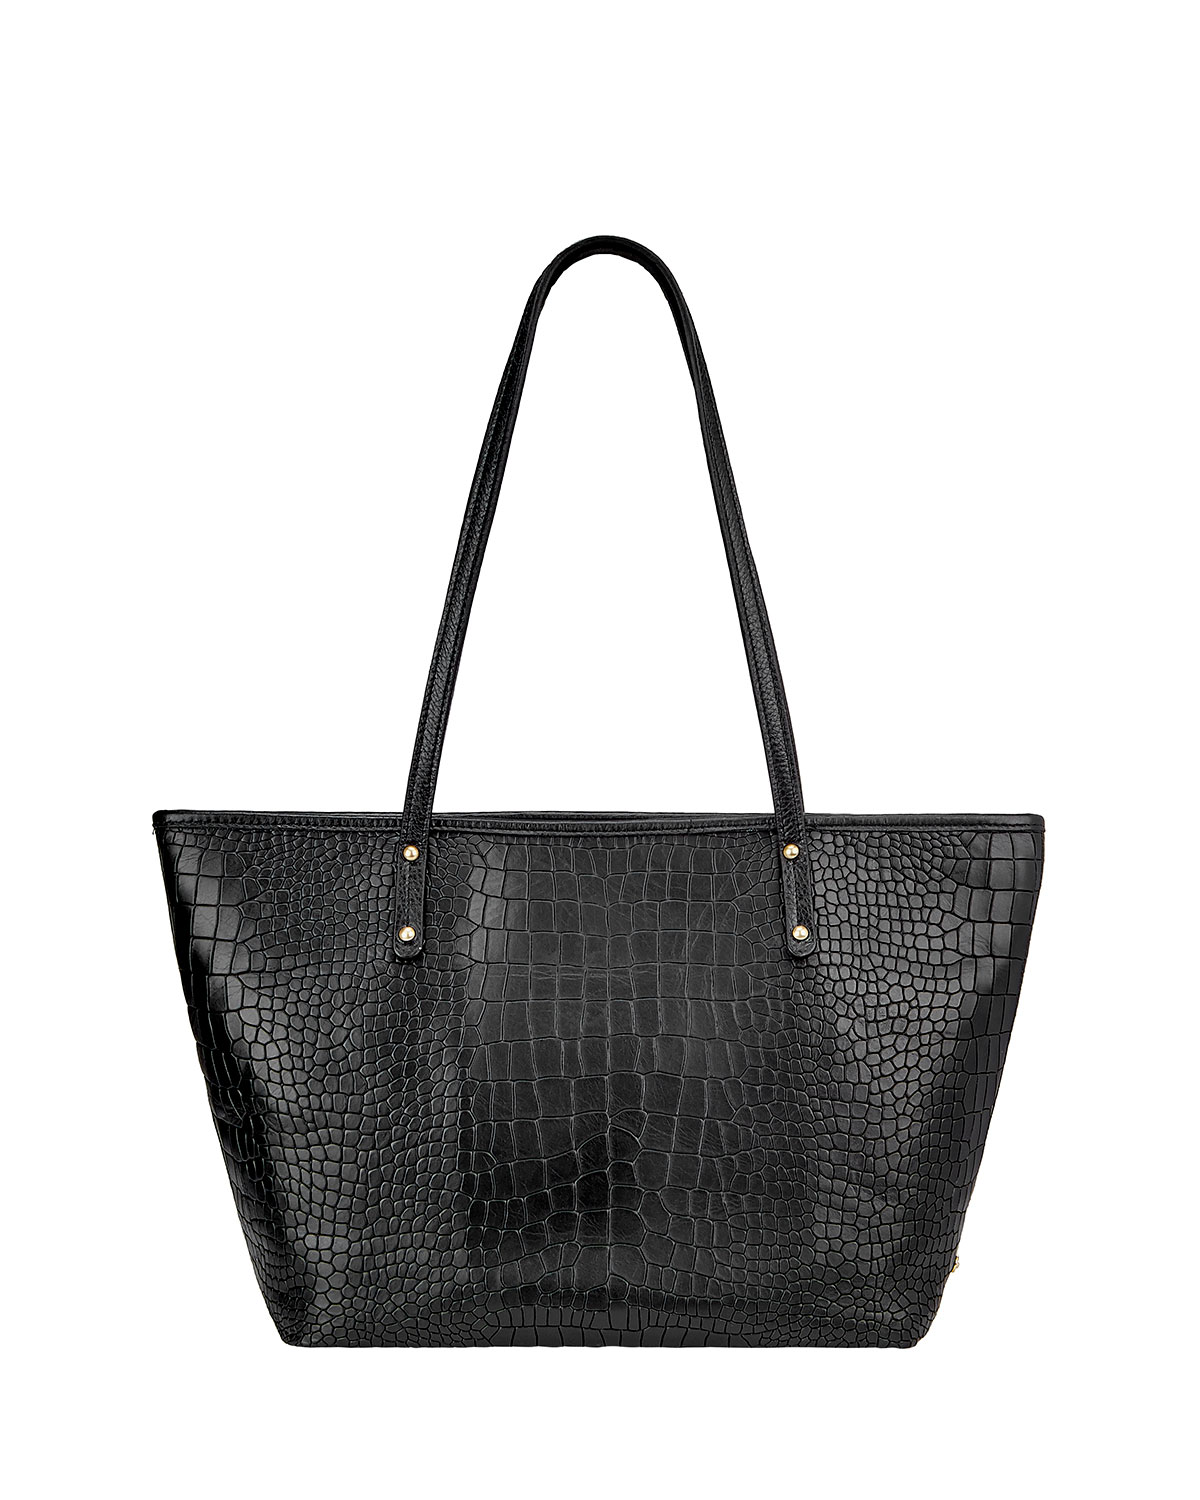 Gigi New York Taylor Crocodile-Embossed Tote Bag